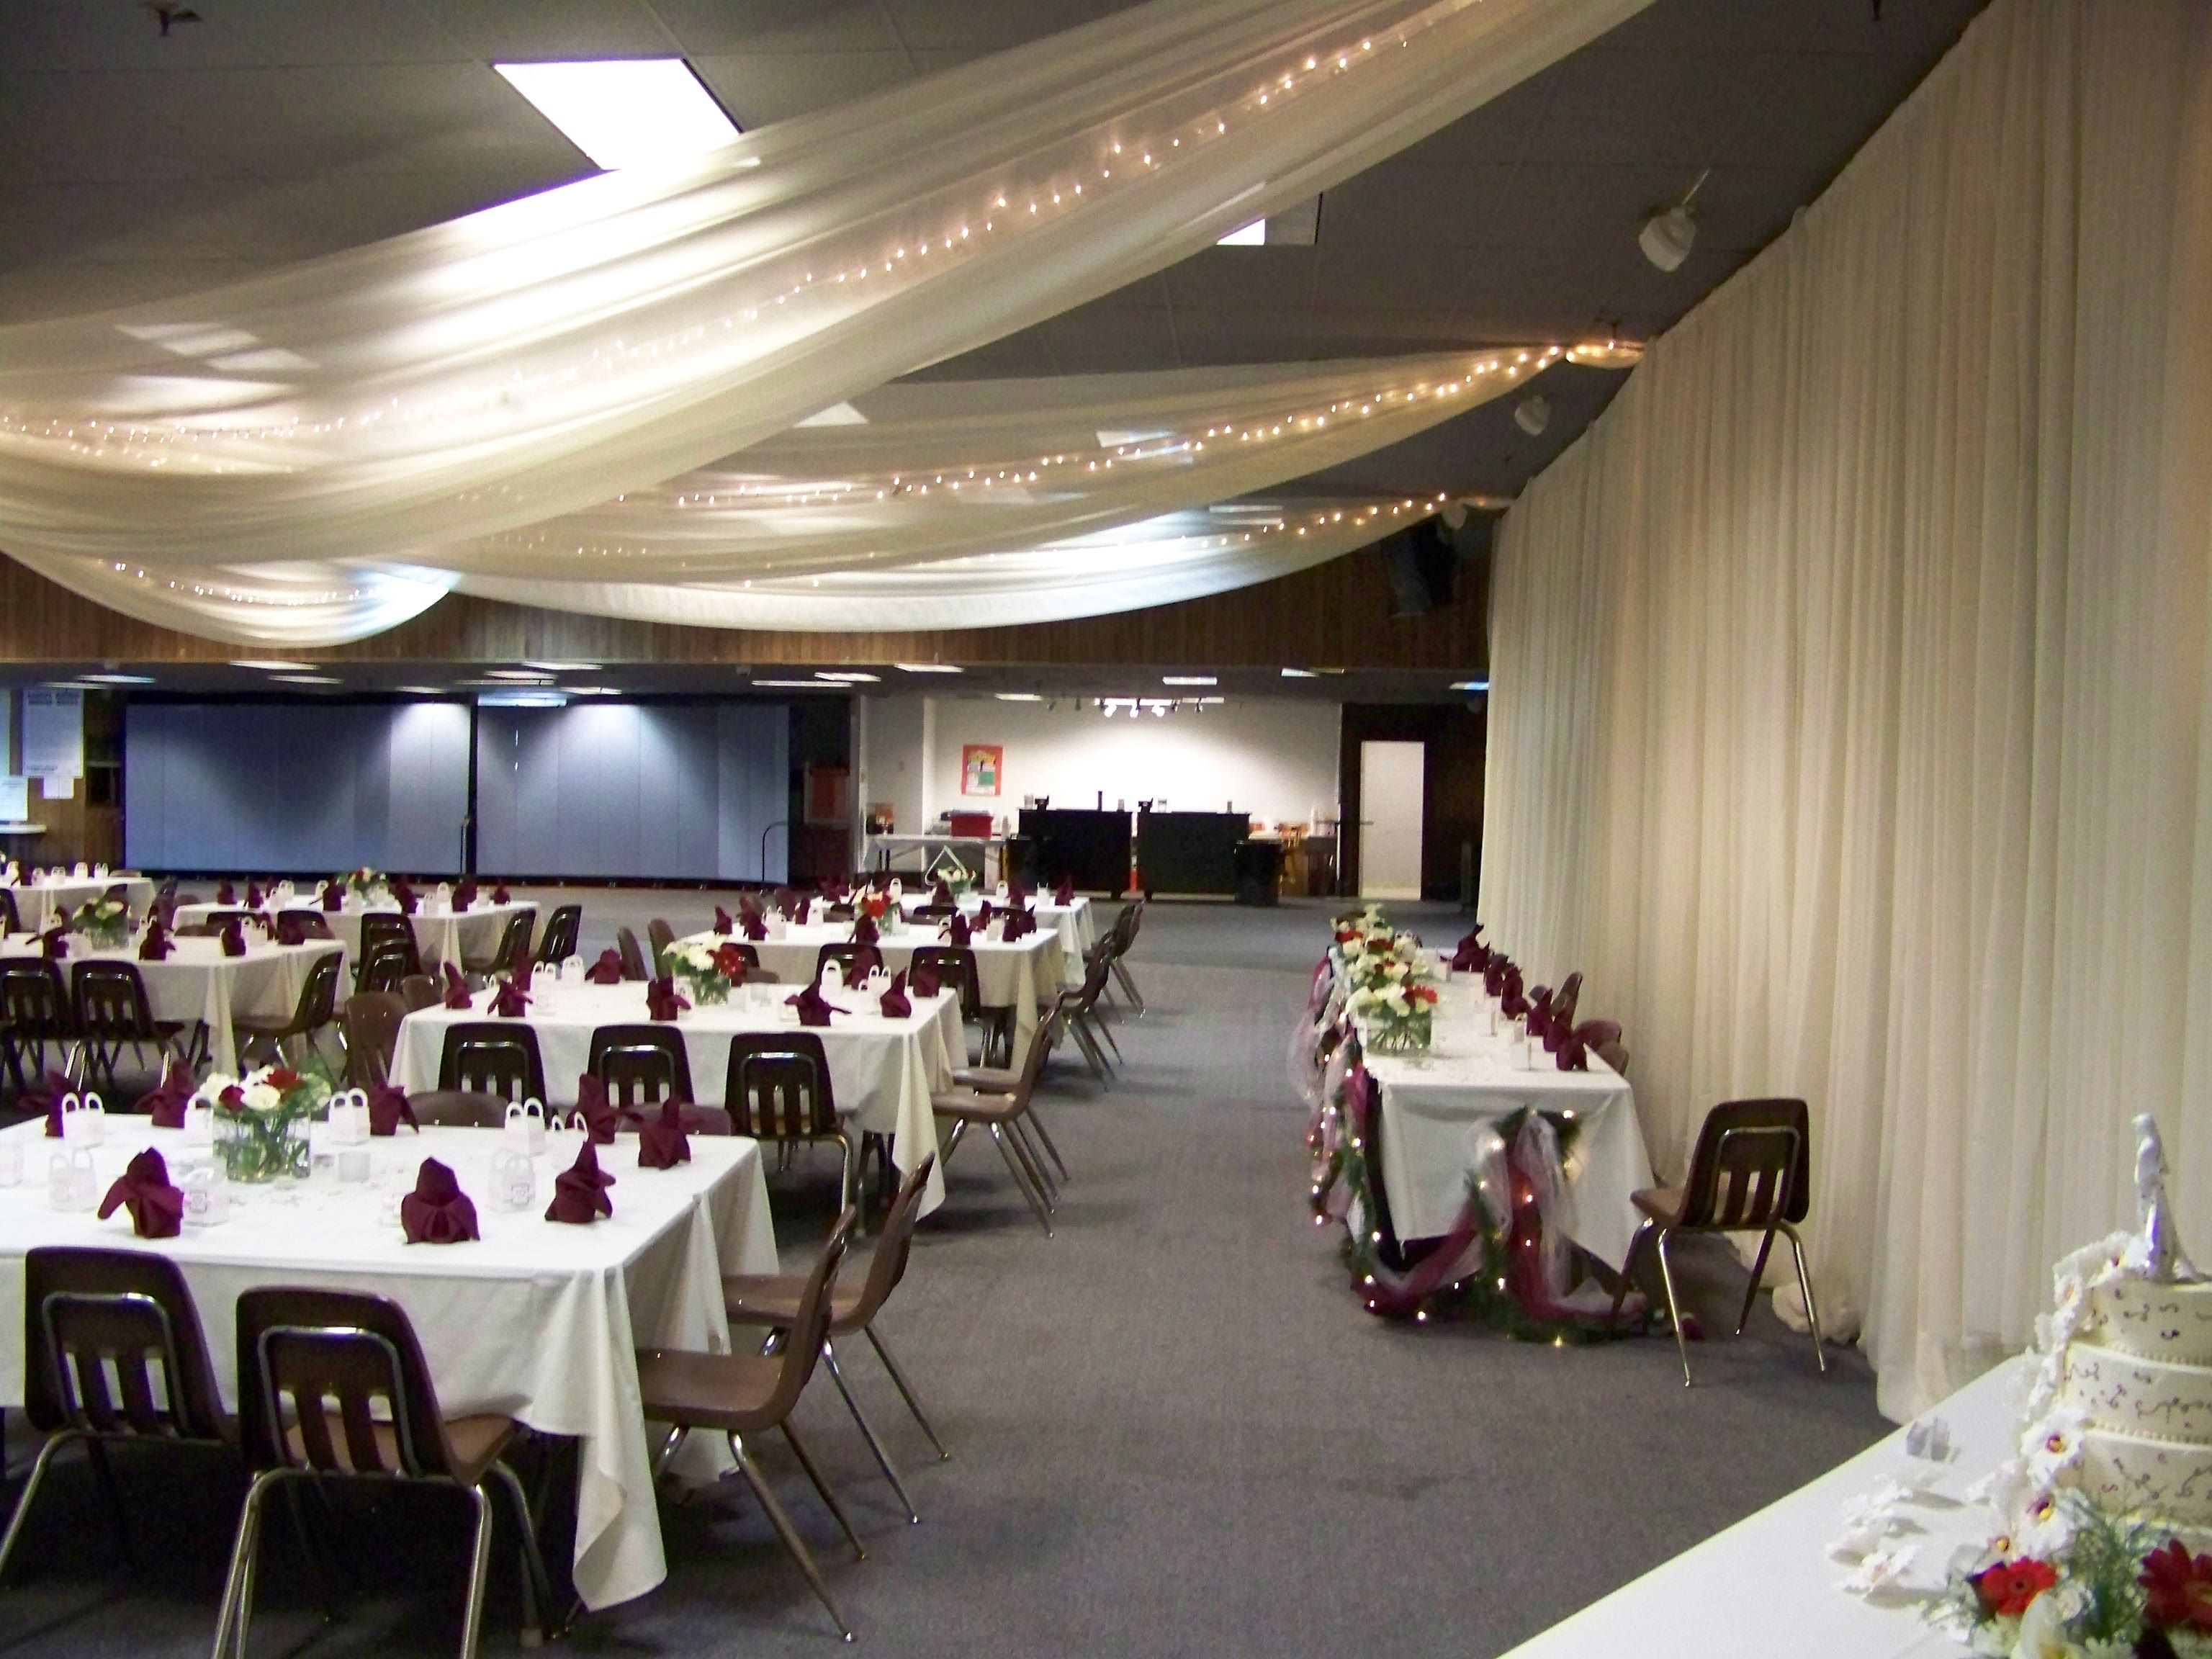 Bloomington VFW Hall Rental Holds Up To 400 People Is 600 They Provide Catering